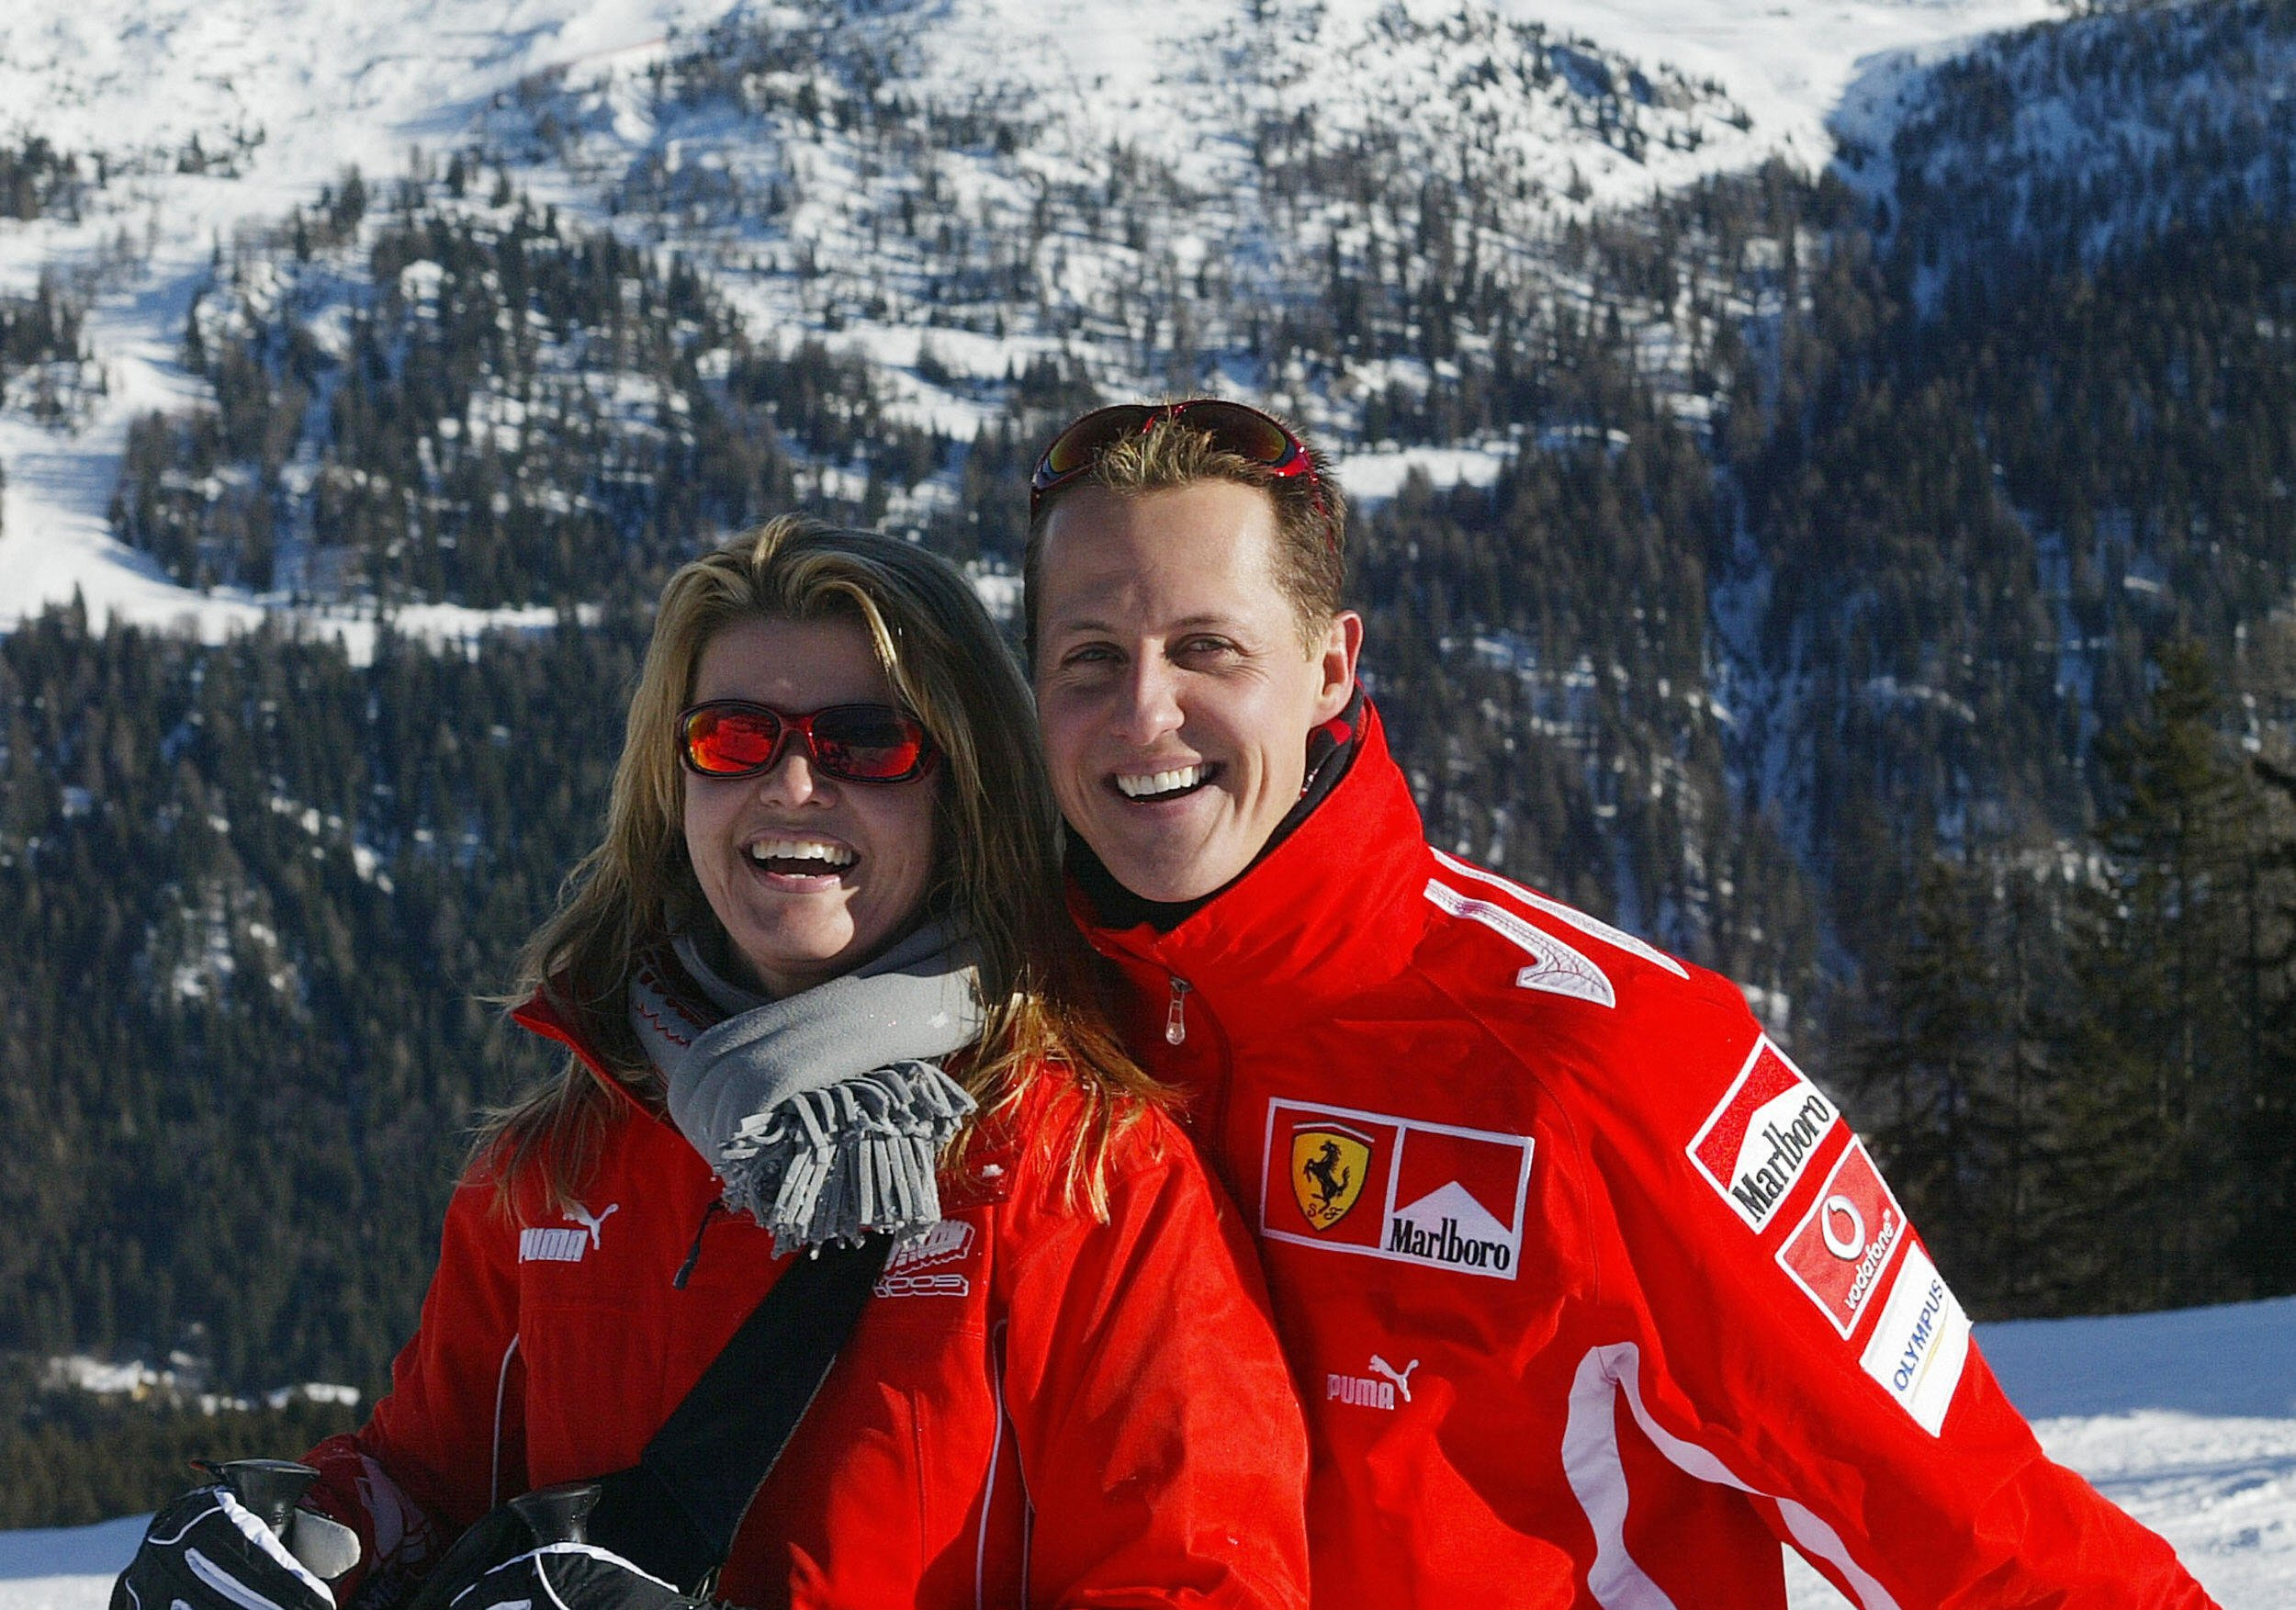 MADONNA DI CAMPIGLIO, ITALY: German Formula 1 driver Michael Schumacher poses with his wife Corinna, in the winter resort of Madonna di Campiglio, in the Dolomites area, Northern Italy, 11 January 2005. Schumacher takes part in the traditionnal Ferrari winter meeting with the press. AFP PHOTO / Press Ferrari (Photo credit should read STR/AFP/Getty Images)